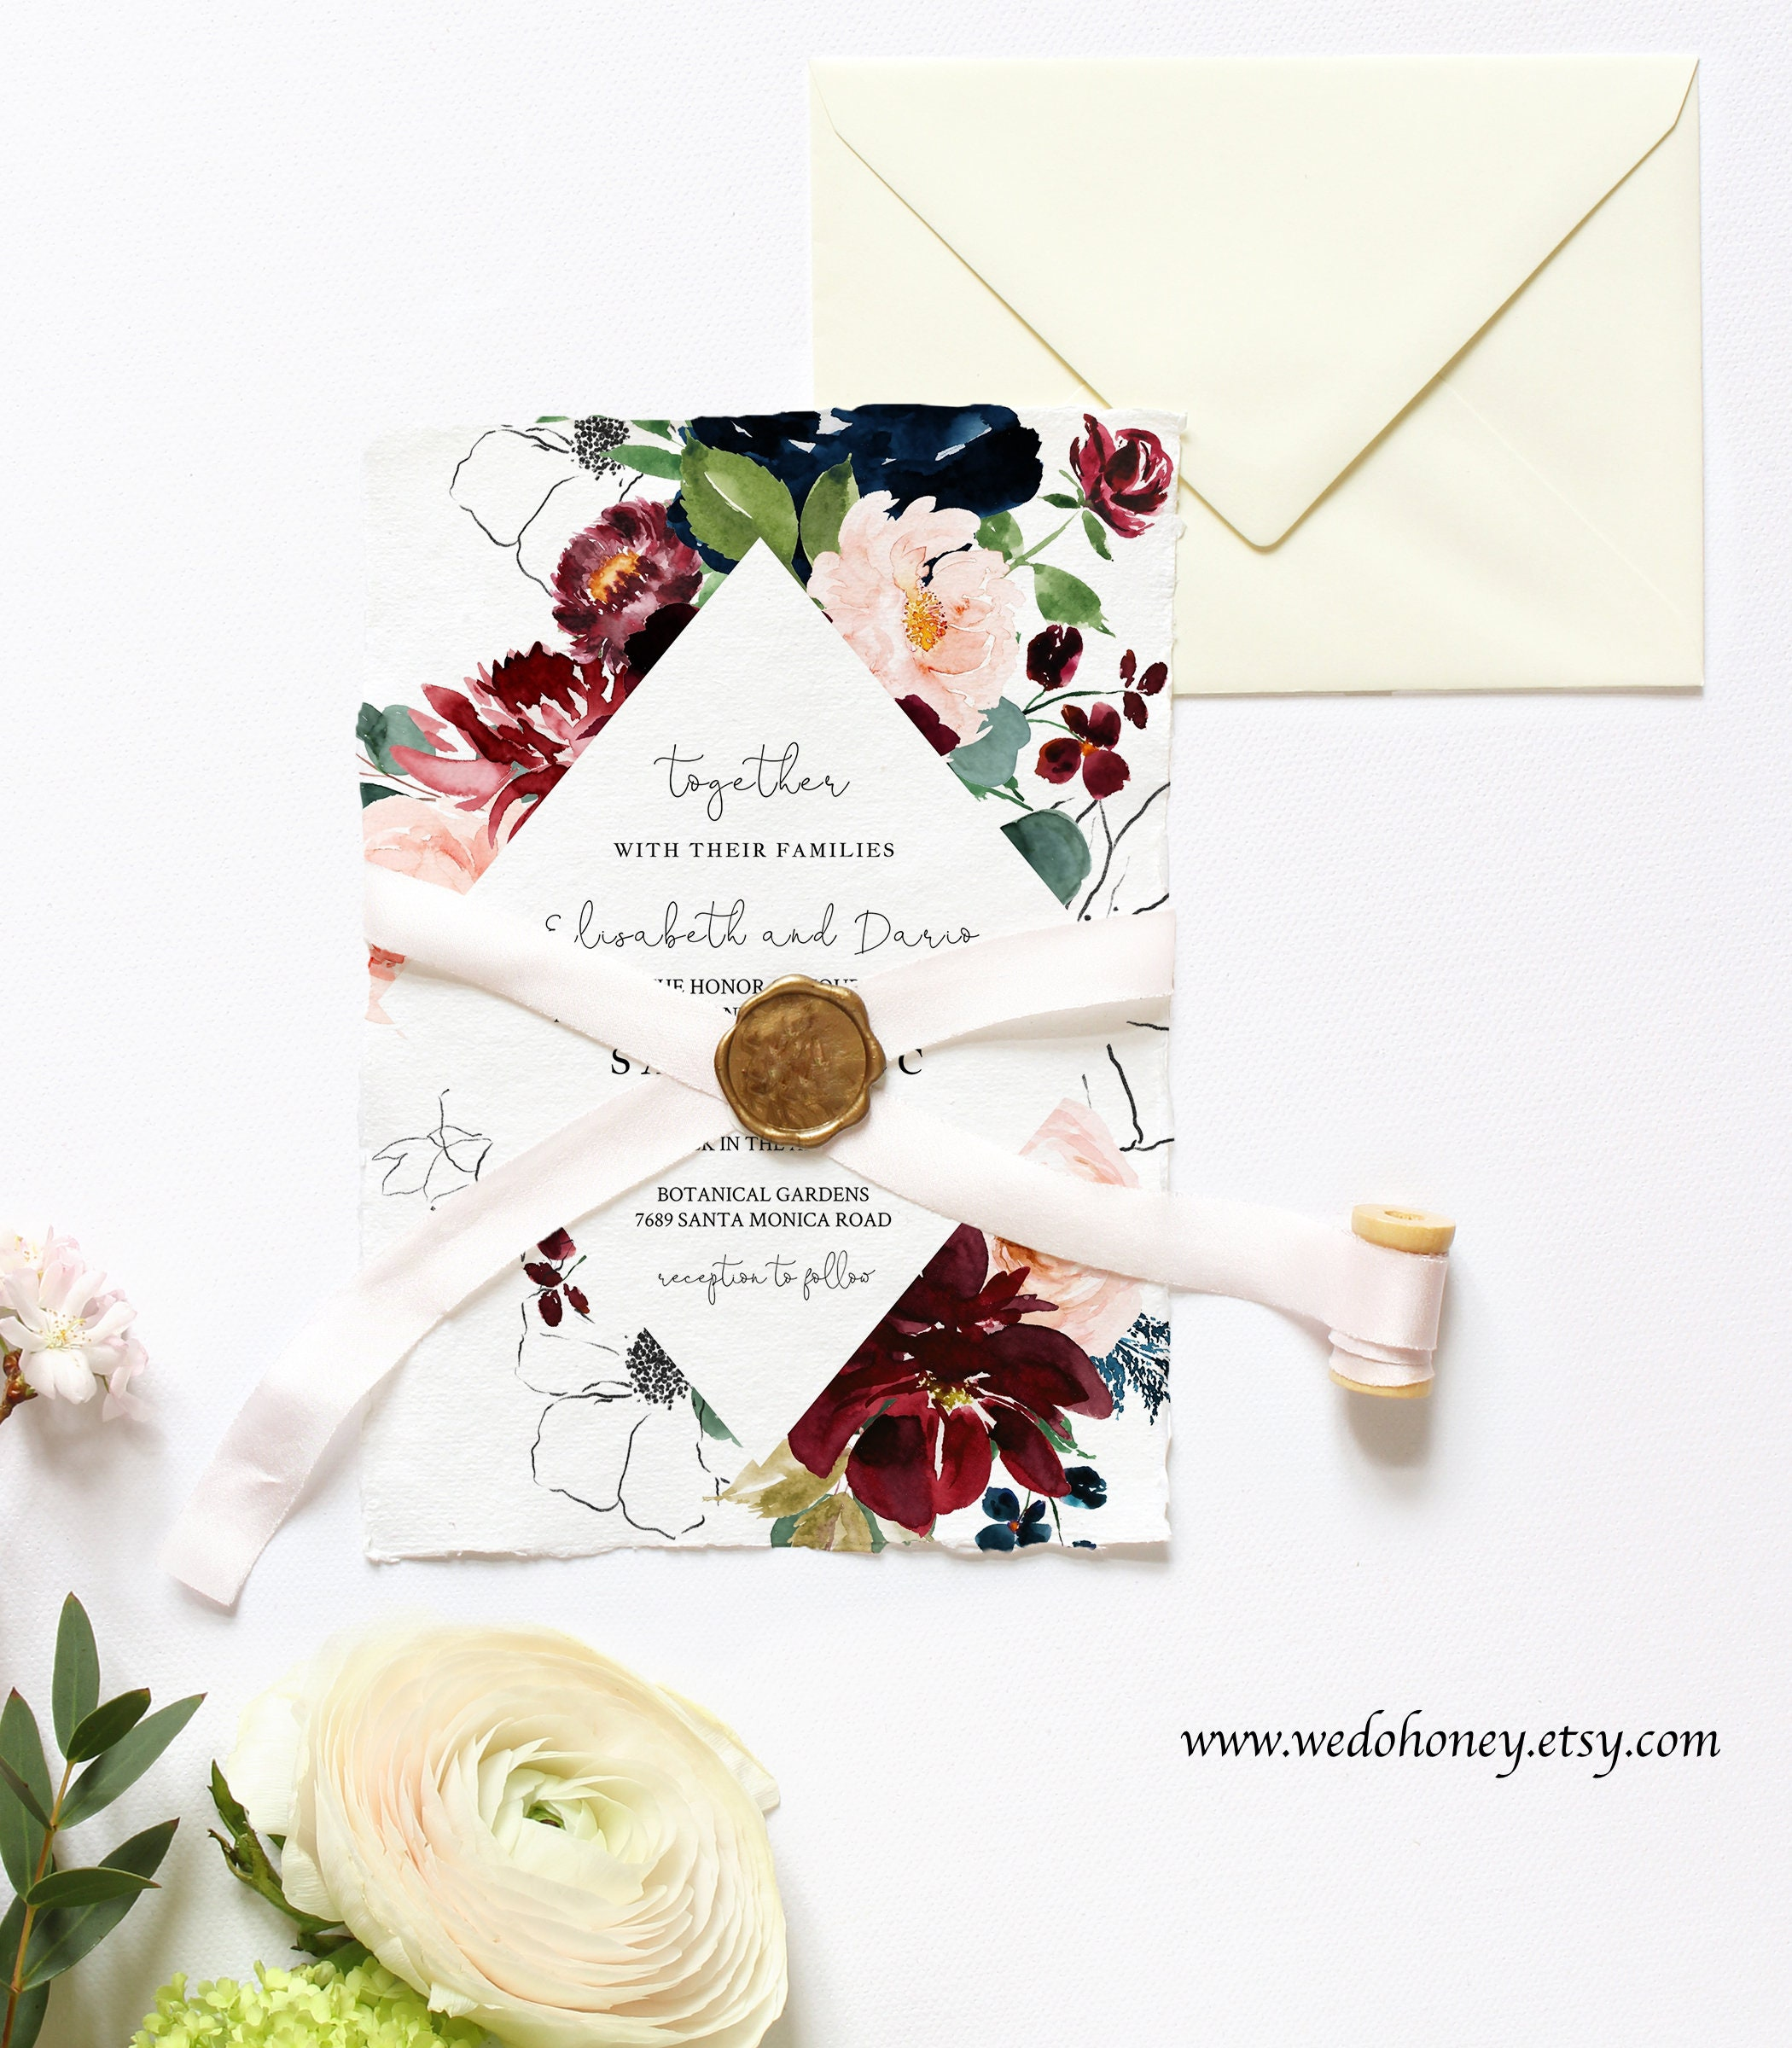 Burgundy Navy Wedding Suite Invitation, RSVP & Details Card, Boho Chic, Instant Download, Editable Text with Corjl #080